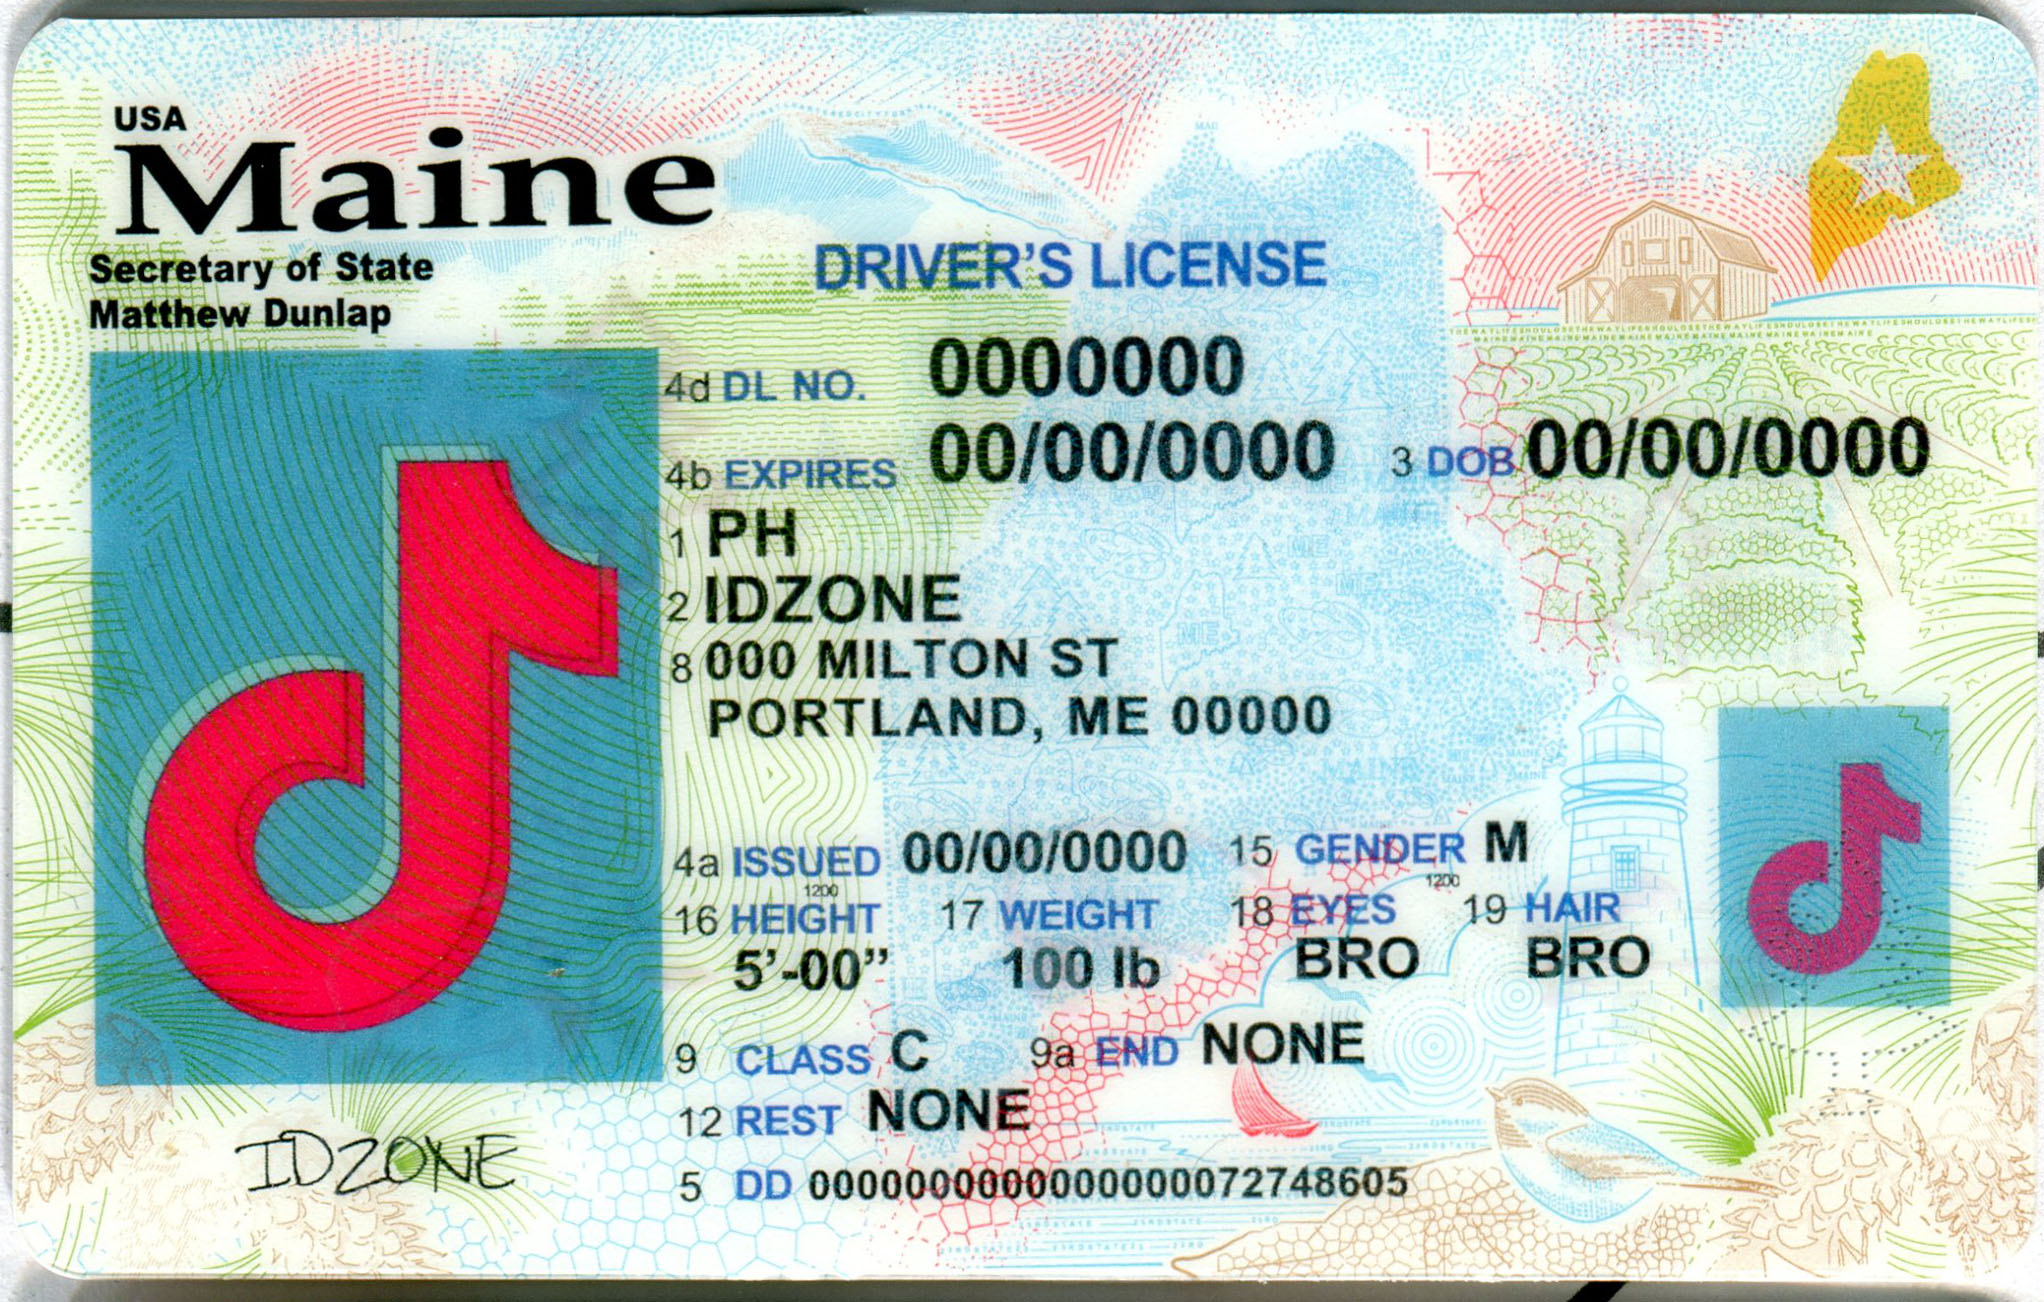 MAINE-New fake id